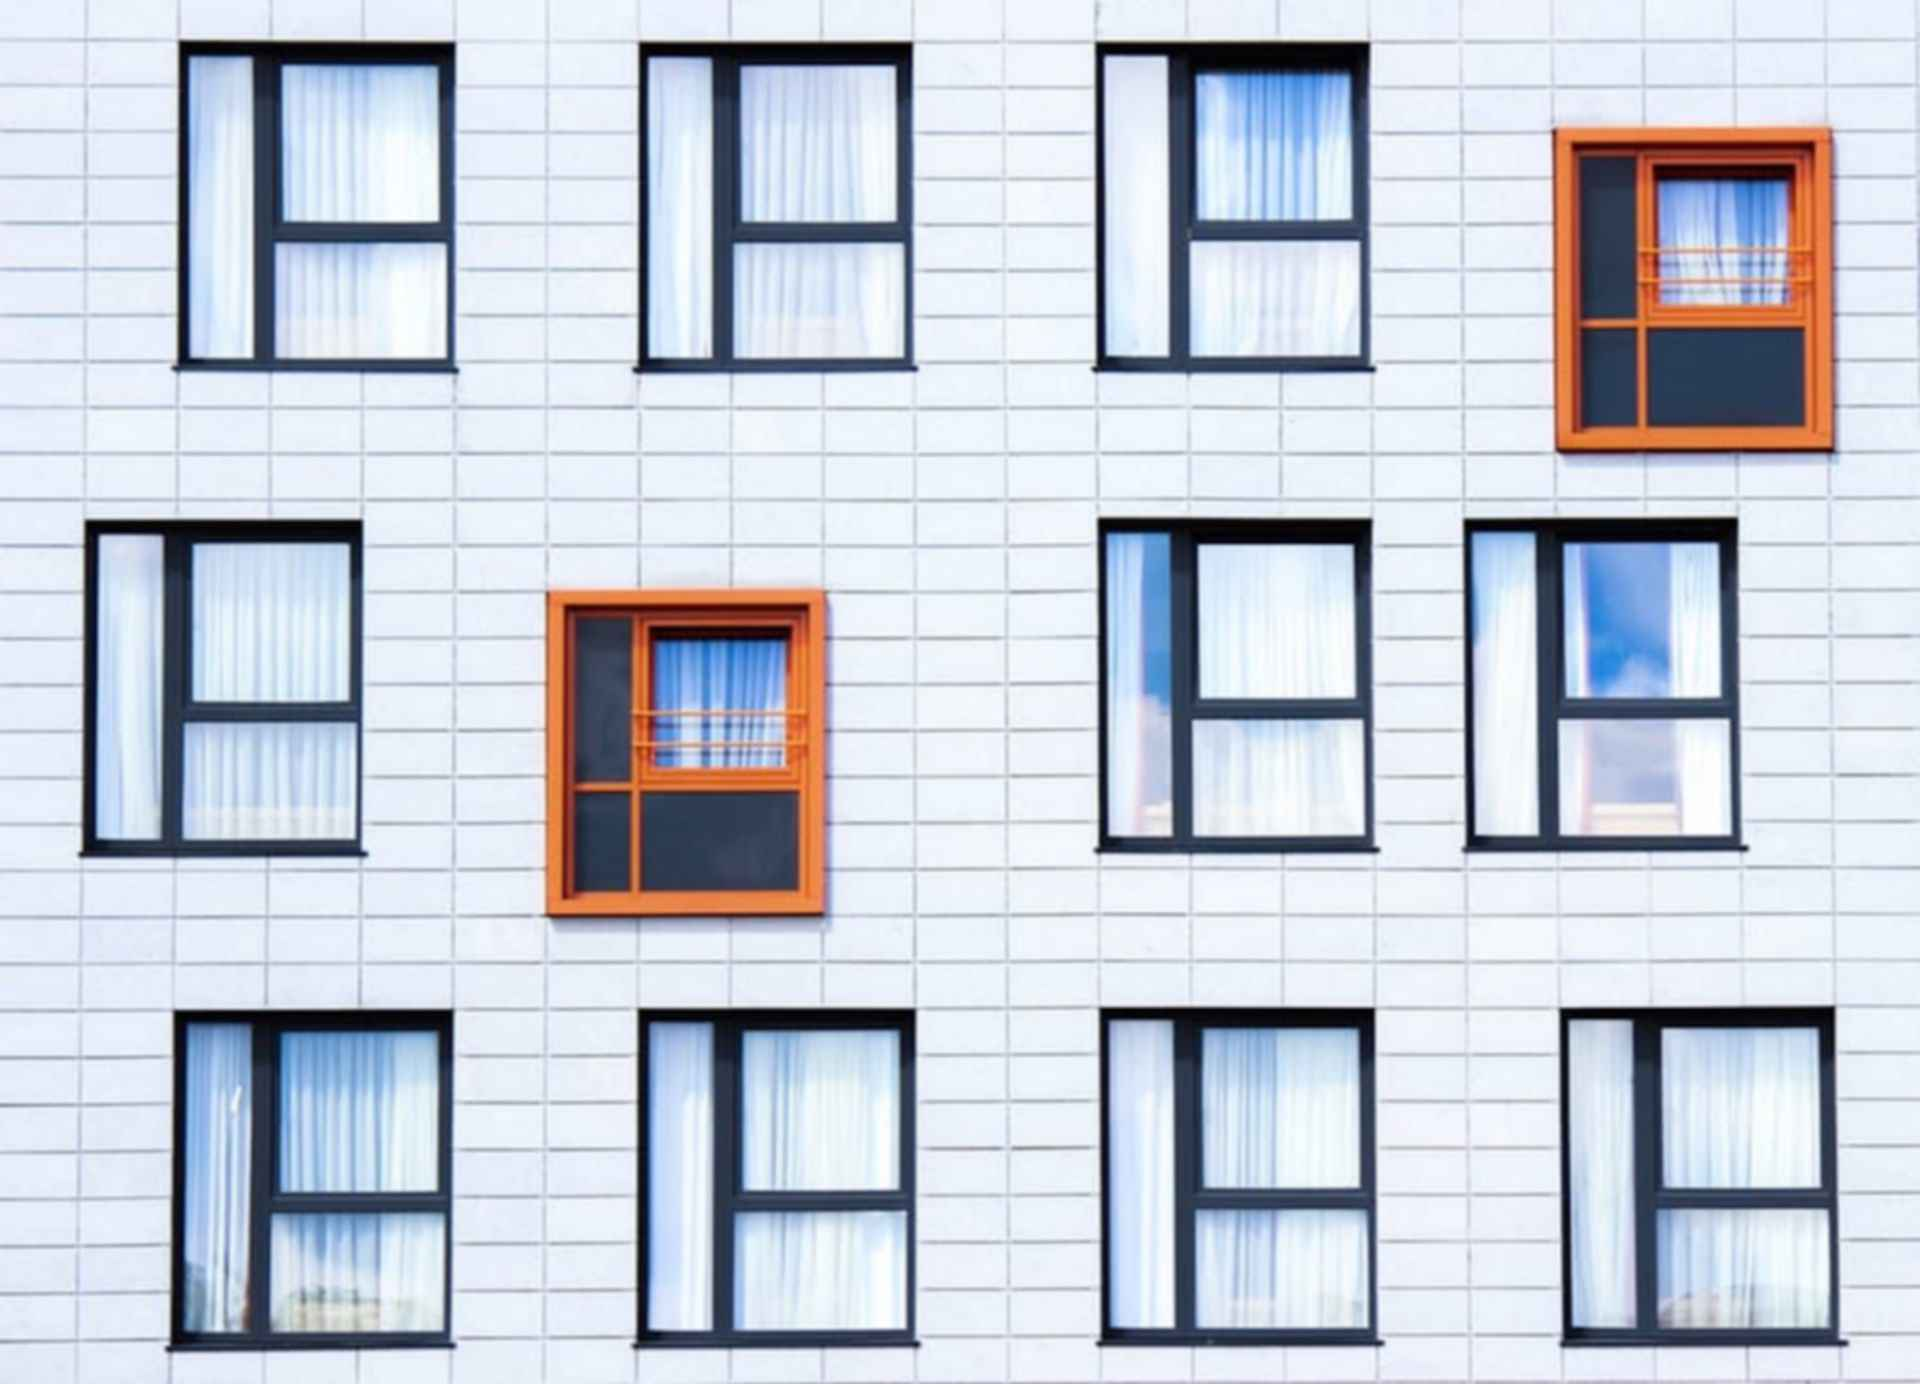 Unique window design